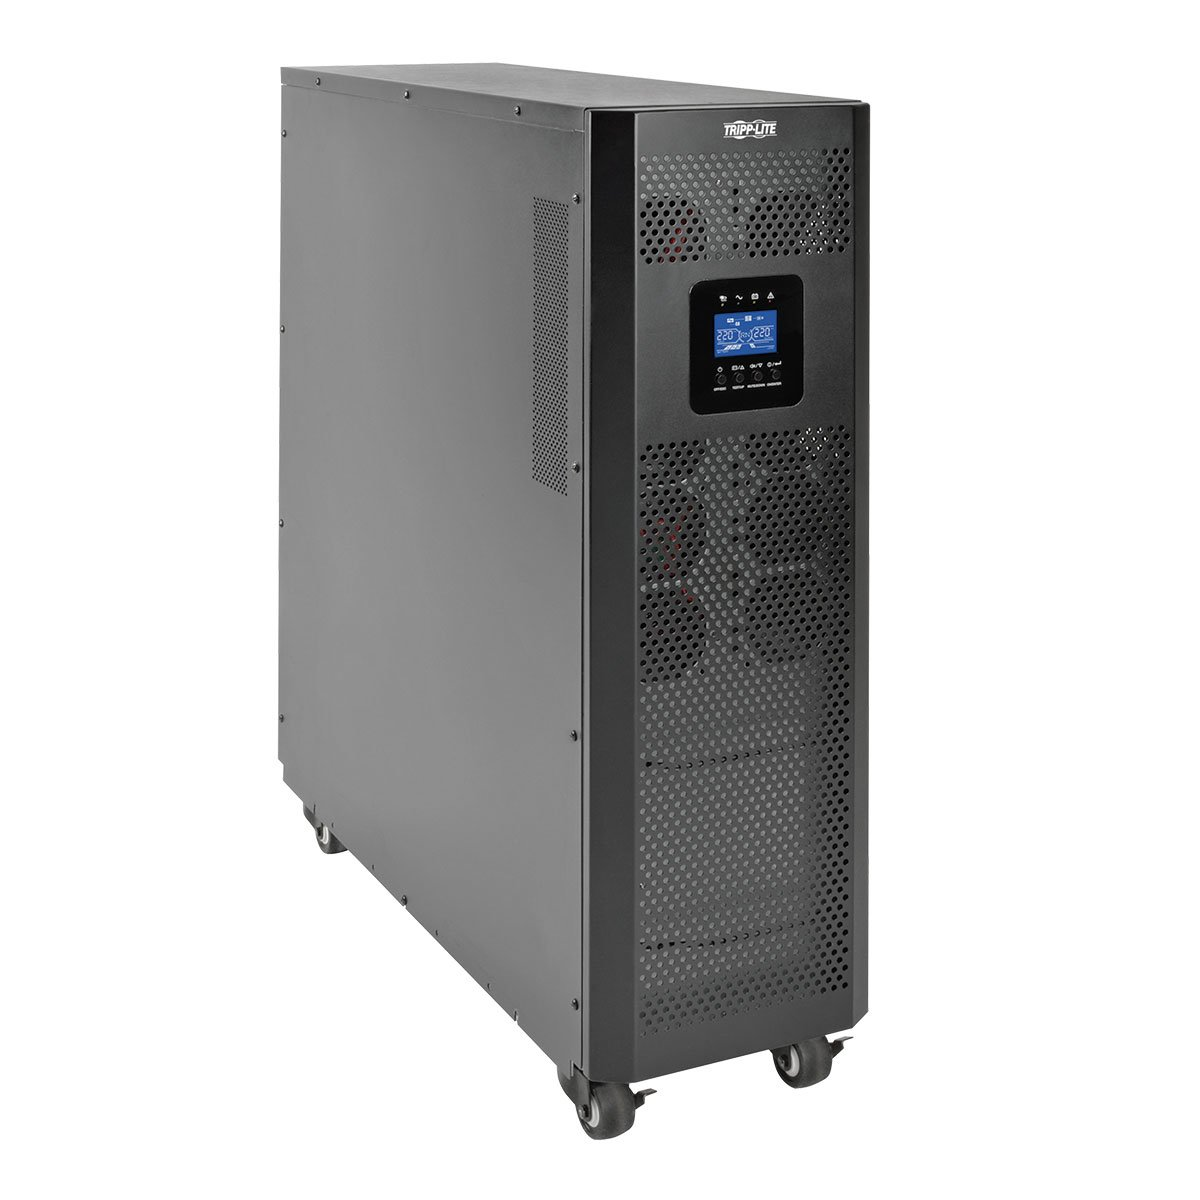 An image of Tripp lite smartonline svtx series 3-phase 380/400/415v 10kva 9kw on-line double...